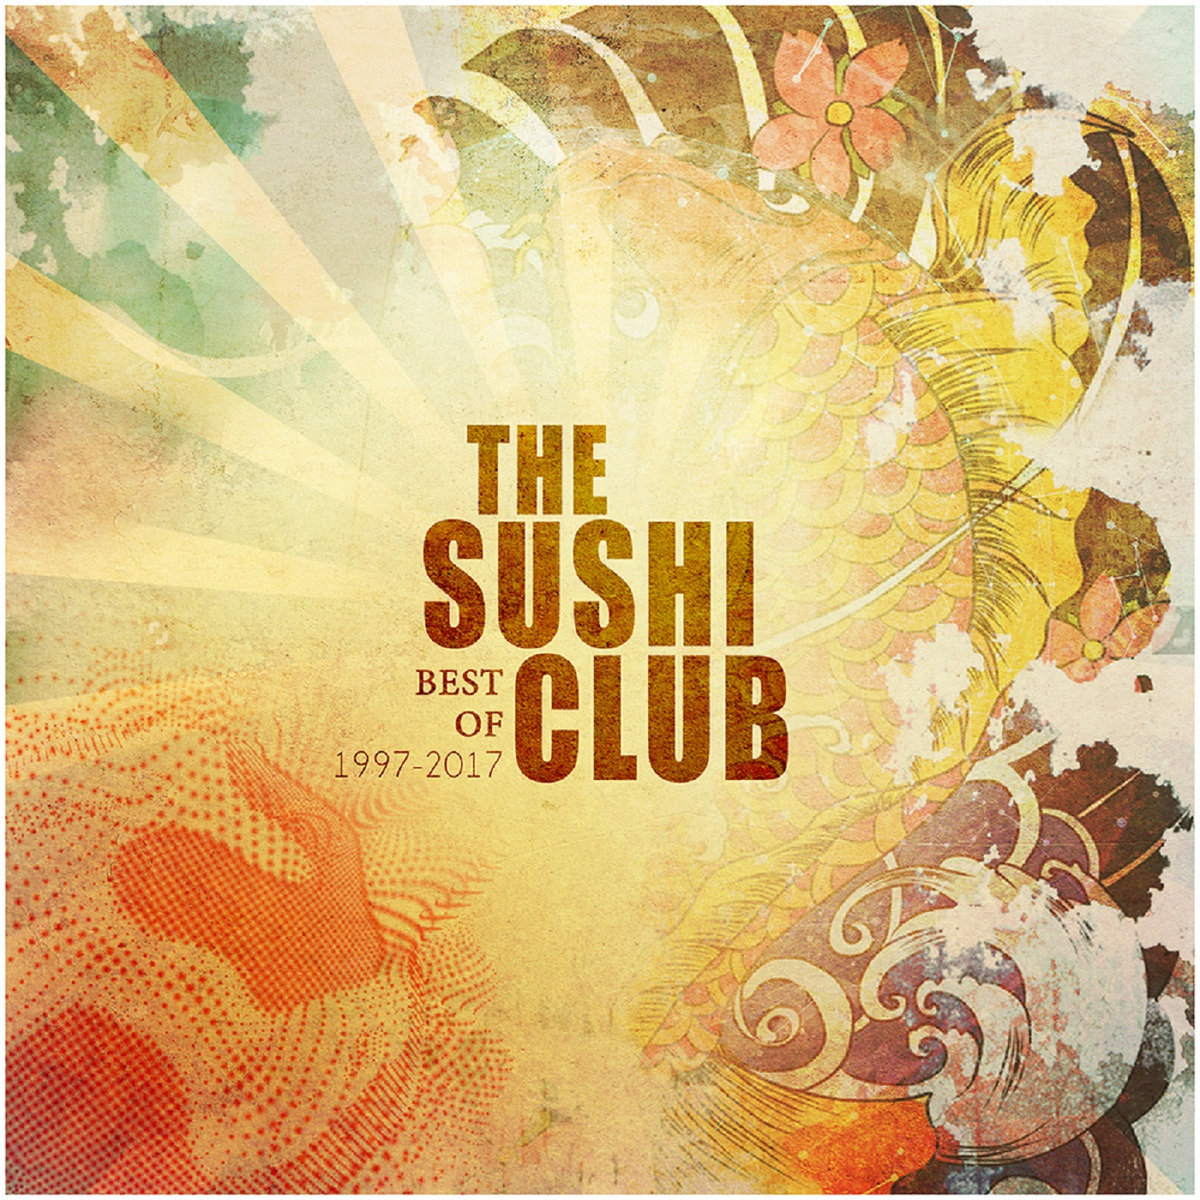 Best Of 1997-2017 | The Sushi Club